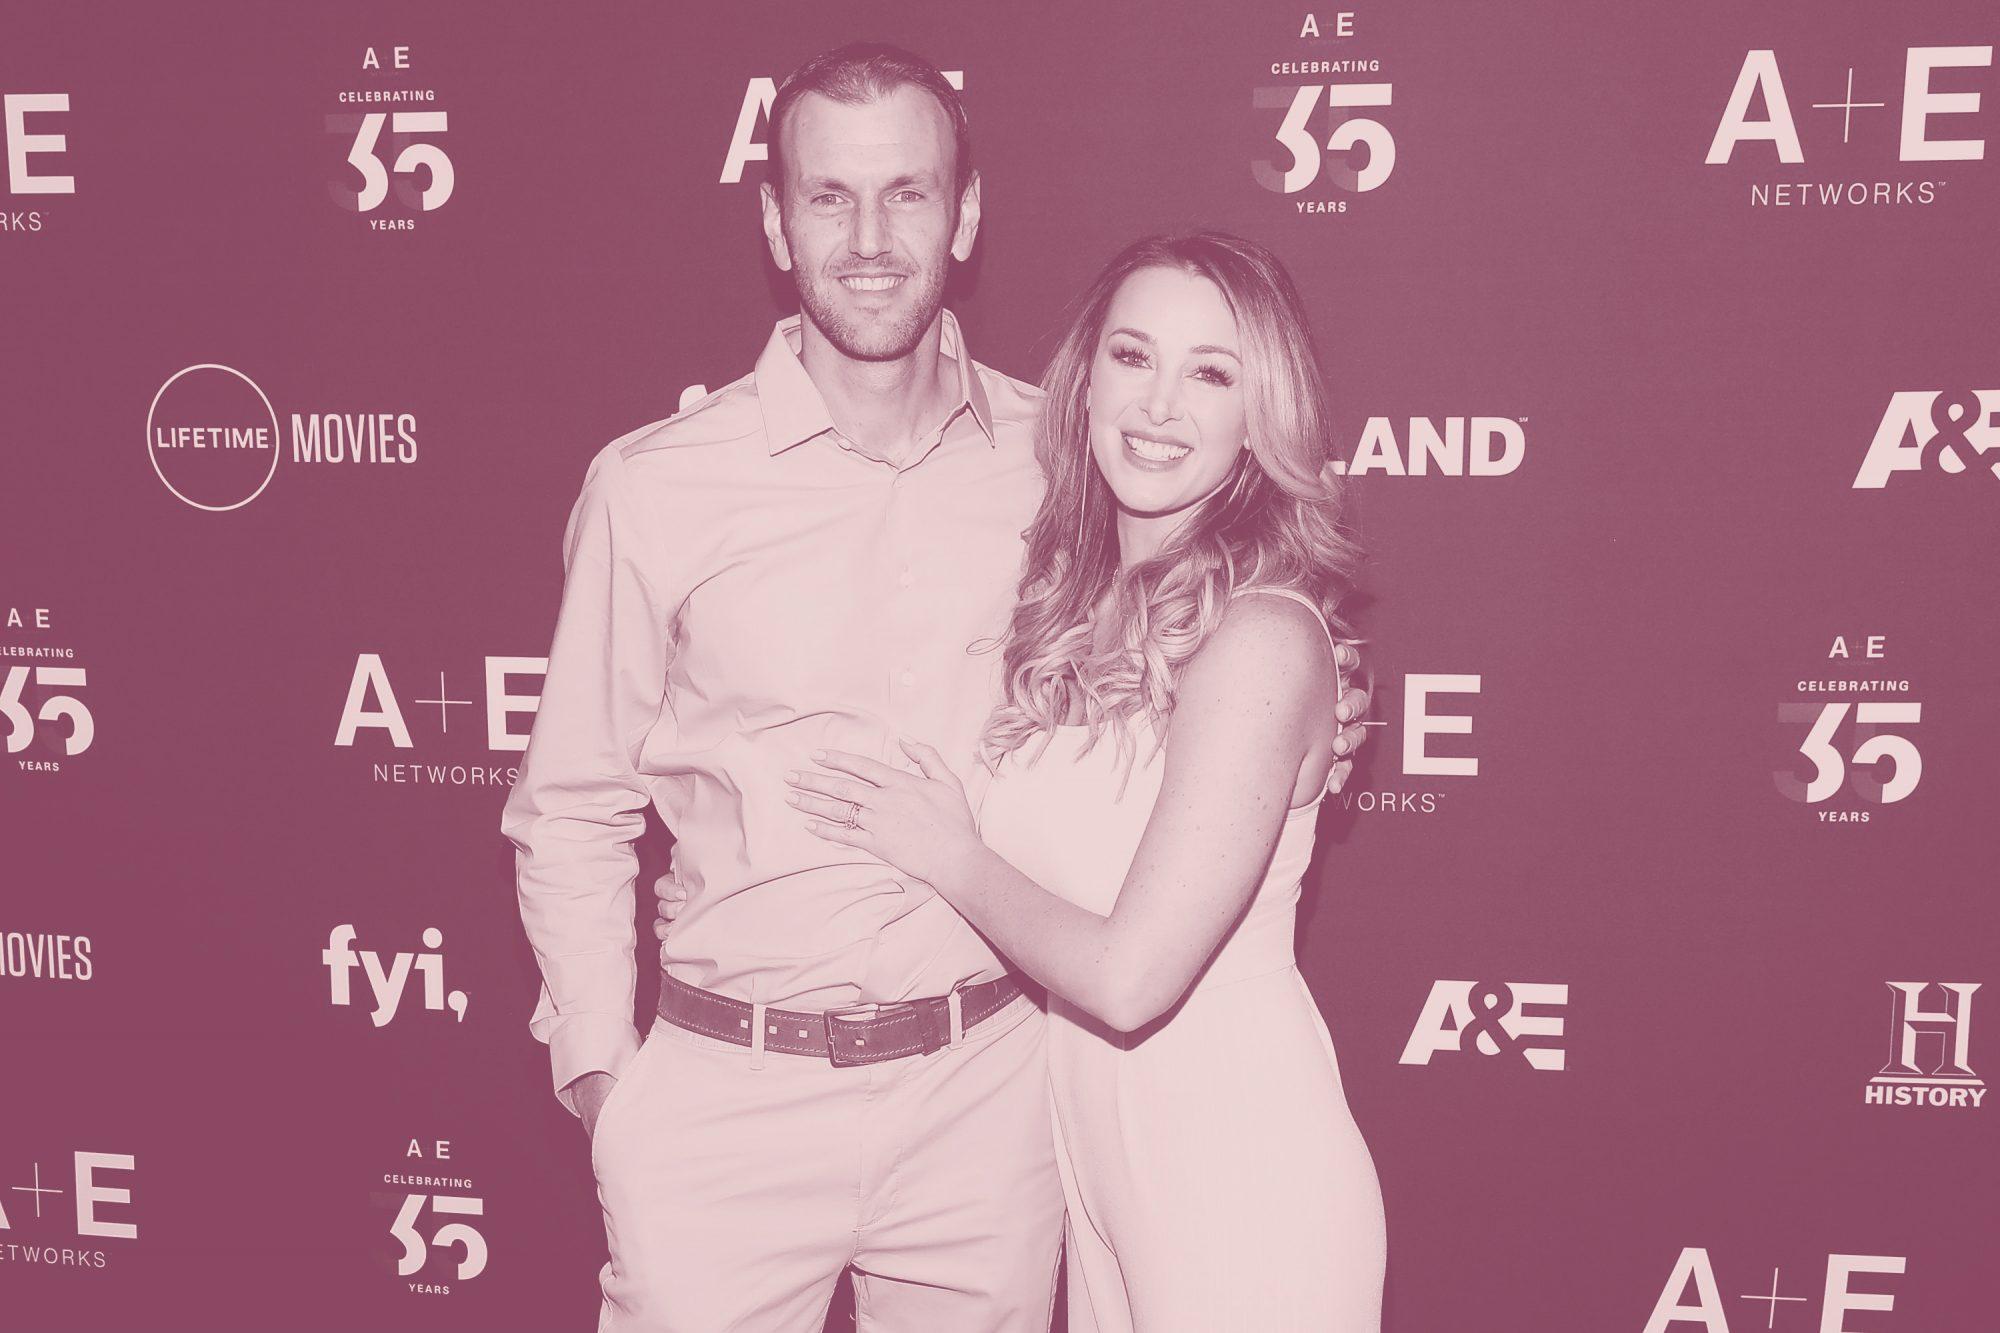 Married at First Sight's Jamie Otis Shares Her Abortion Story: 'It Is a Necessary Option'